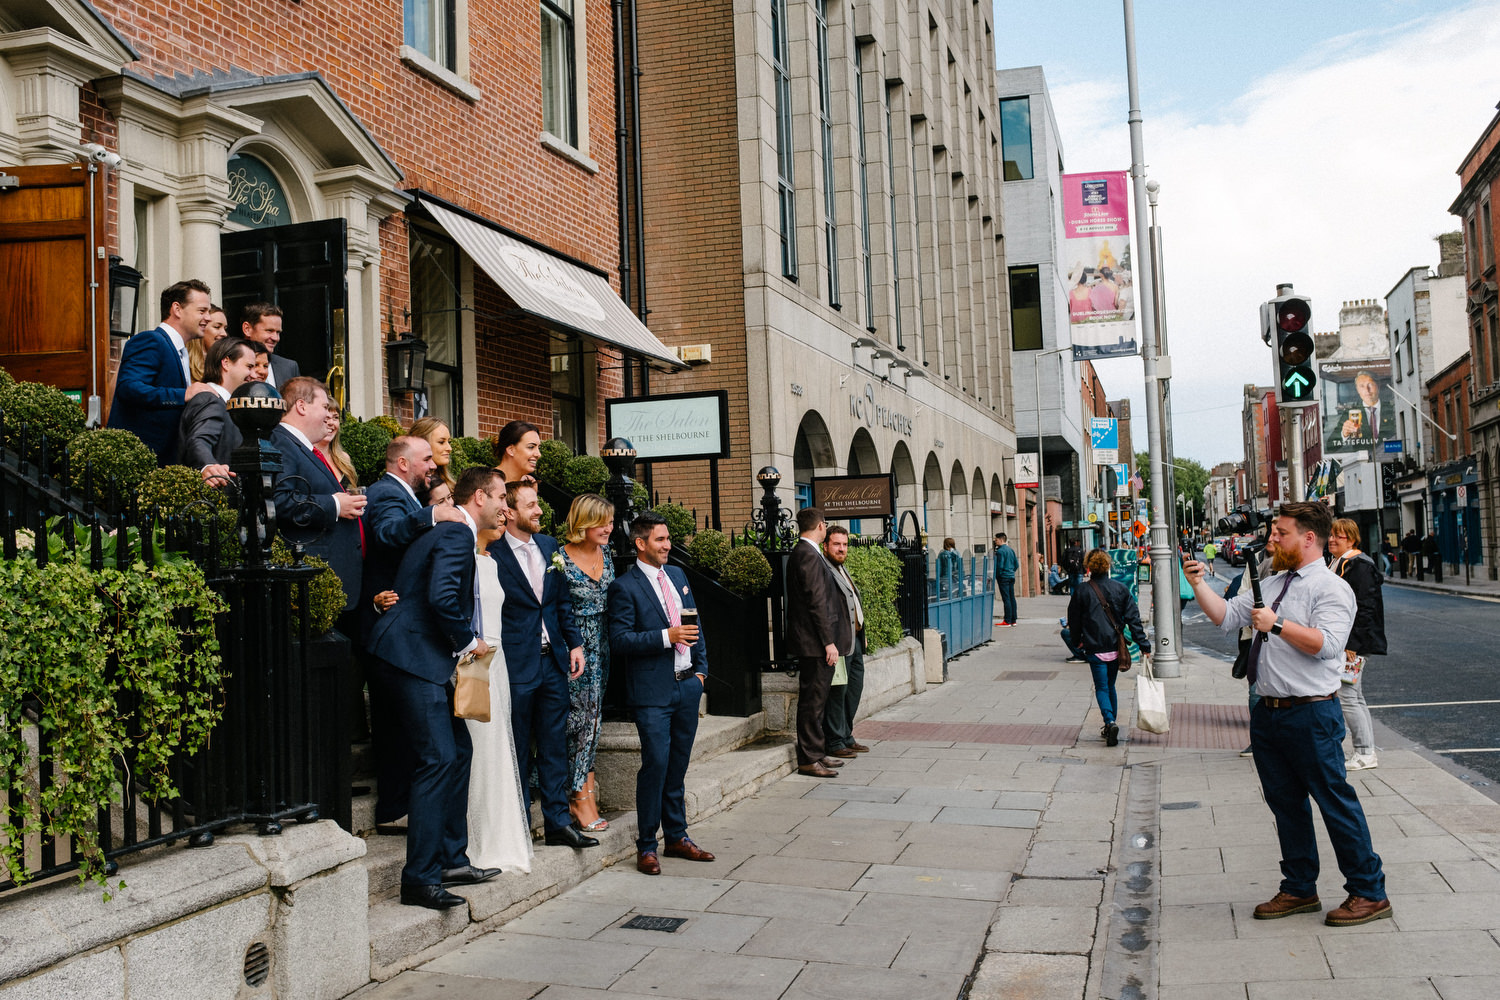 dmp0468_photographer_wedding_dublin_david_mcclelland_candid_photography_fujifilm_shelbourne_reception_documentary